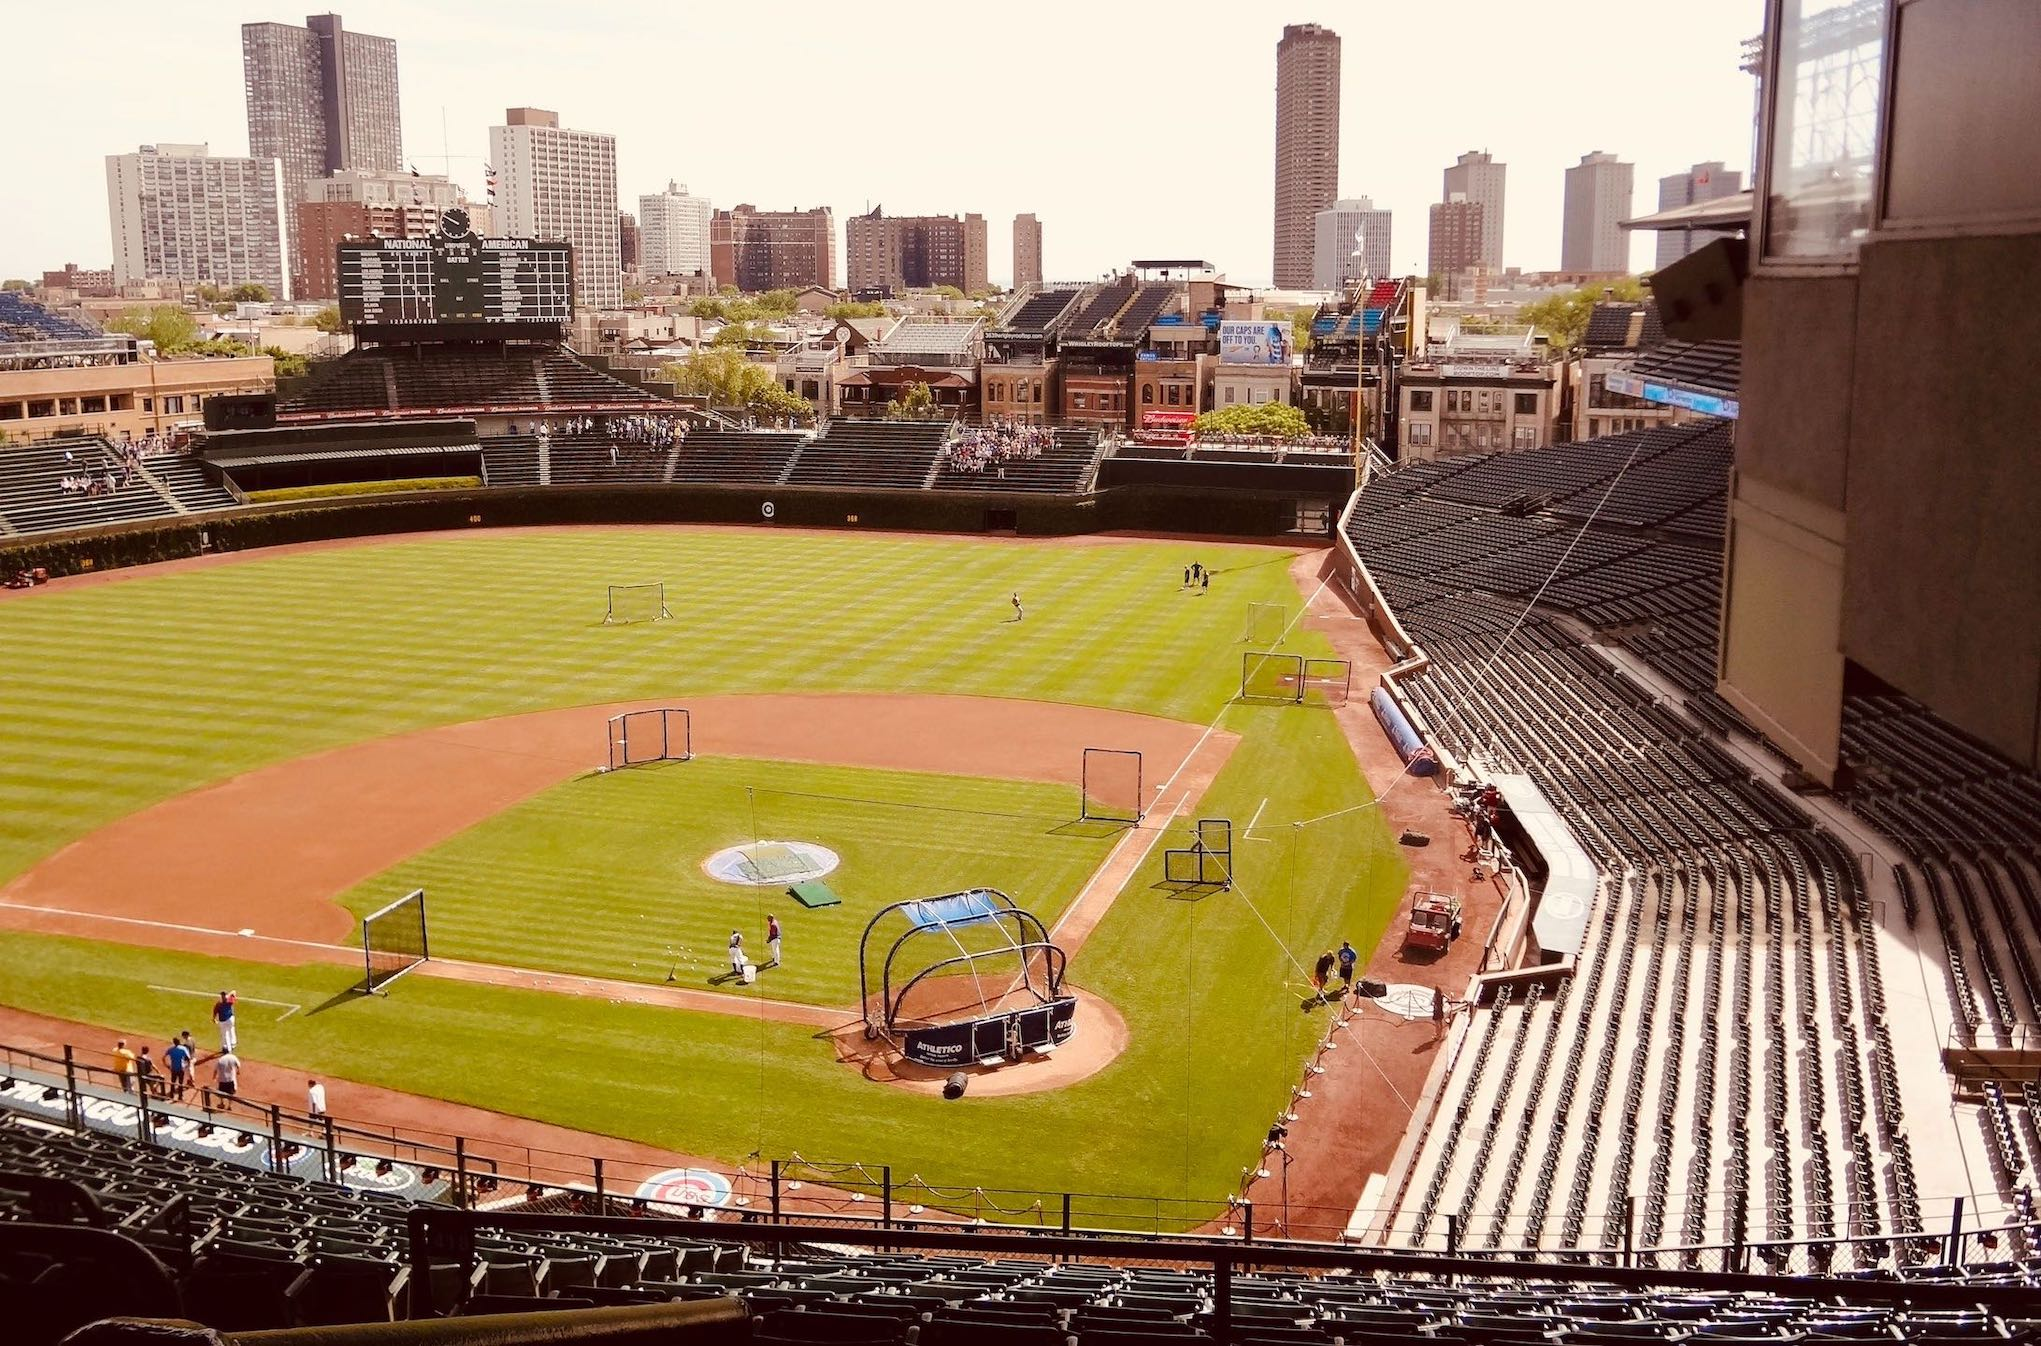 Visiting Wrigley Field in Chicago.